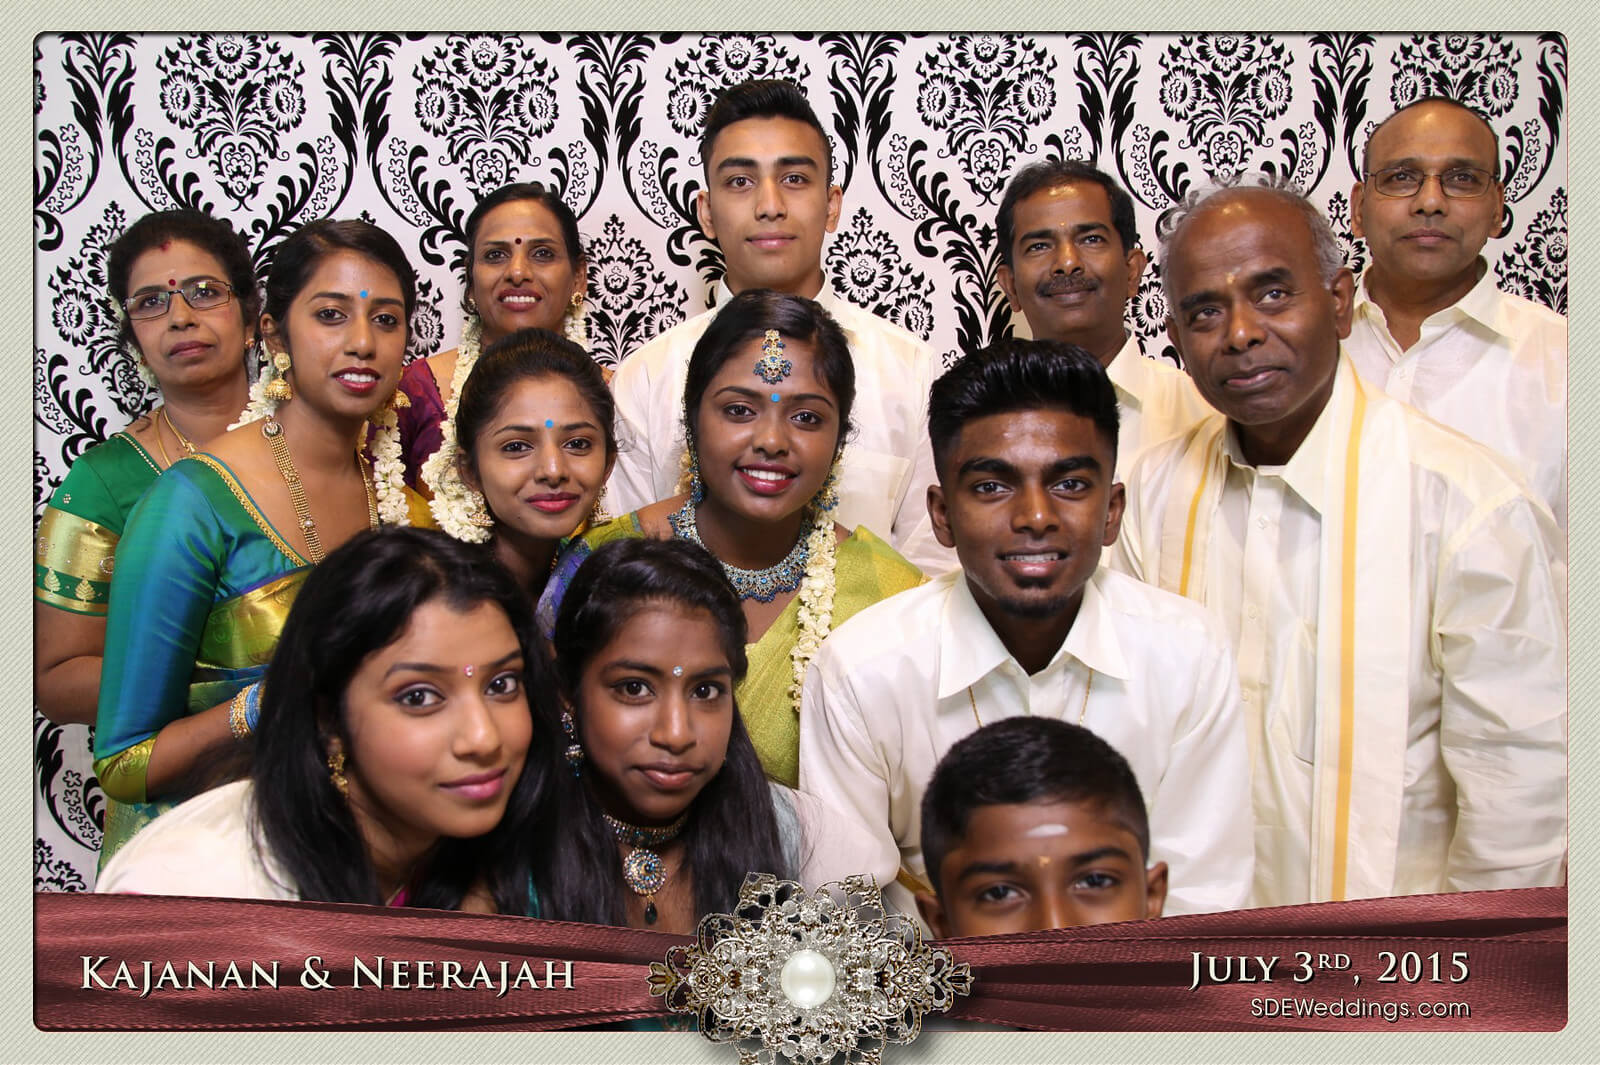 Toronto Scarborough Convention Centre Hindu Wedding Photo Booth Rental 3